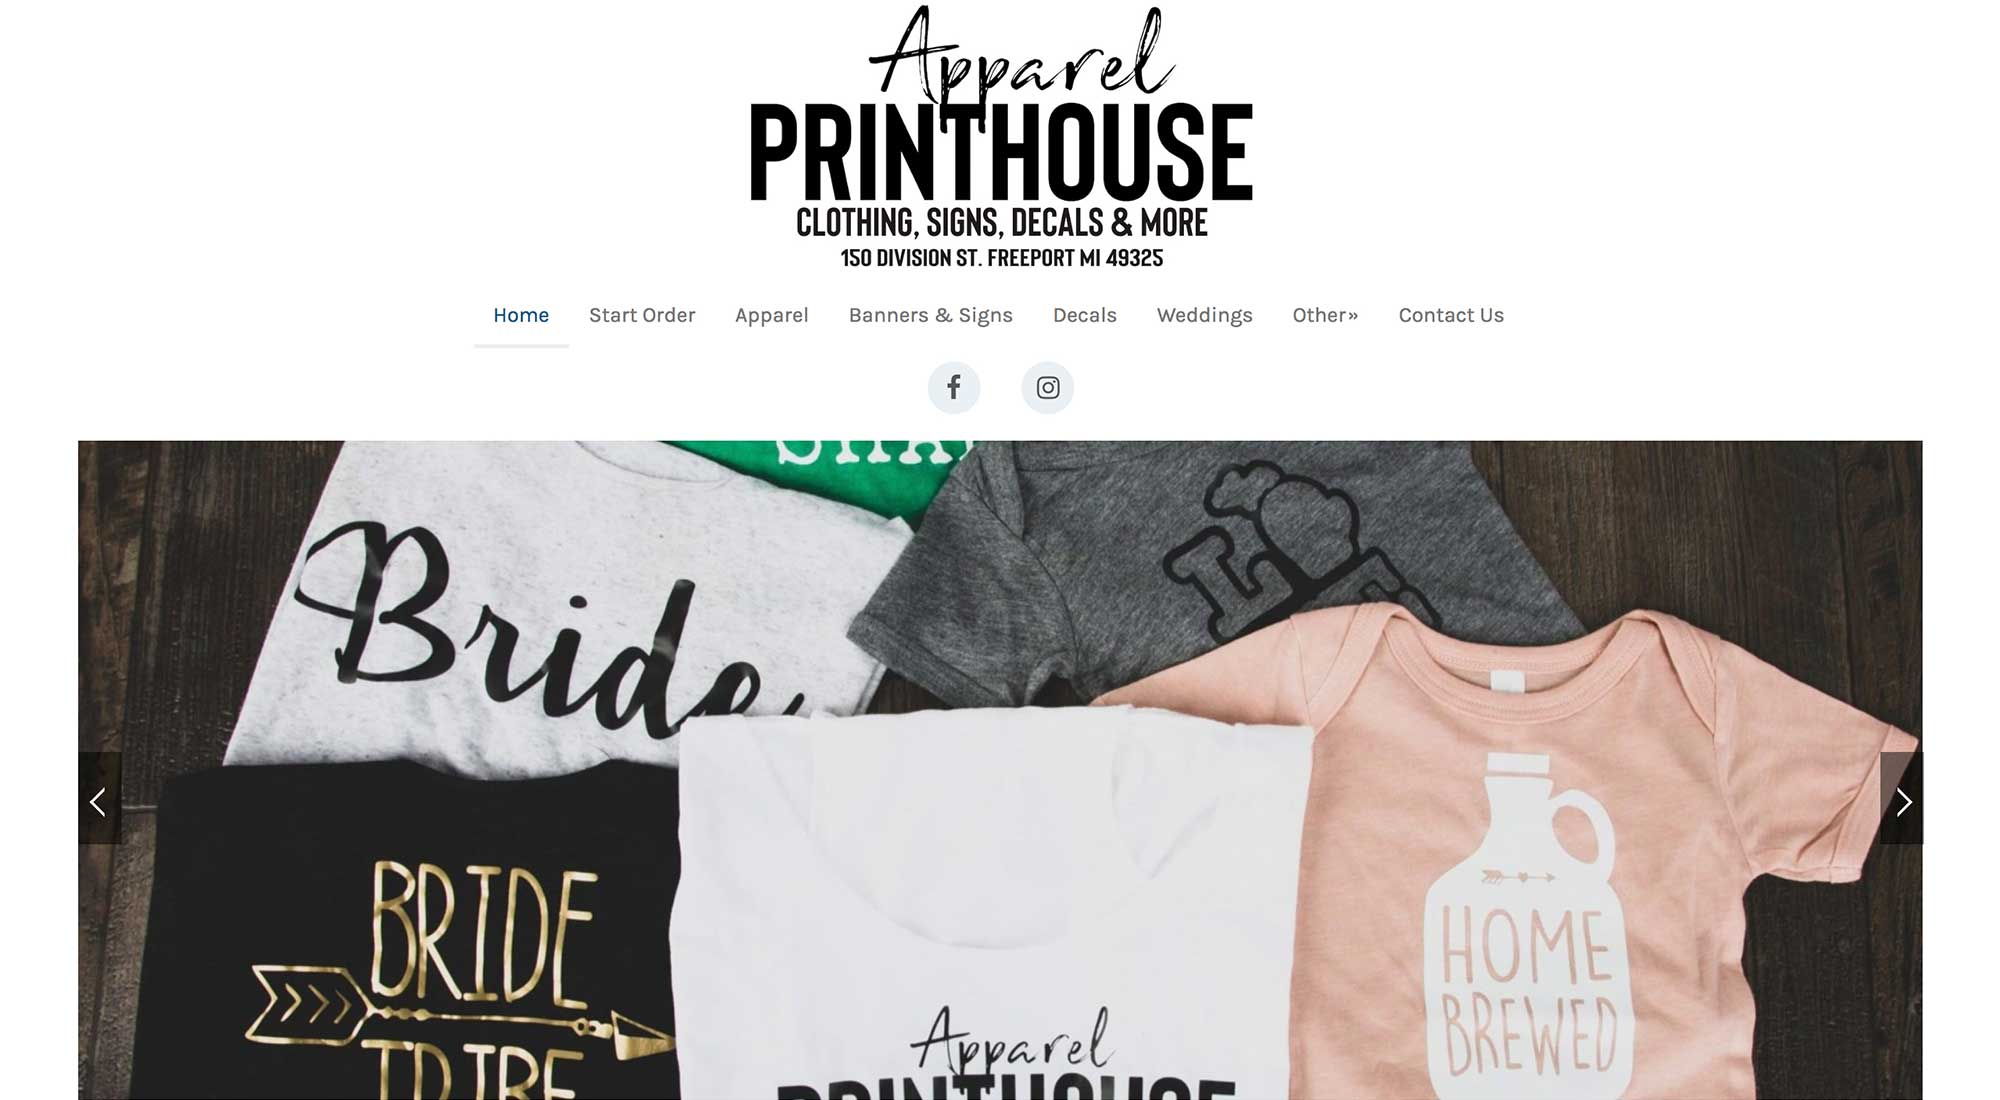 Apparel-Printhouse Freeport MI